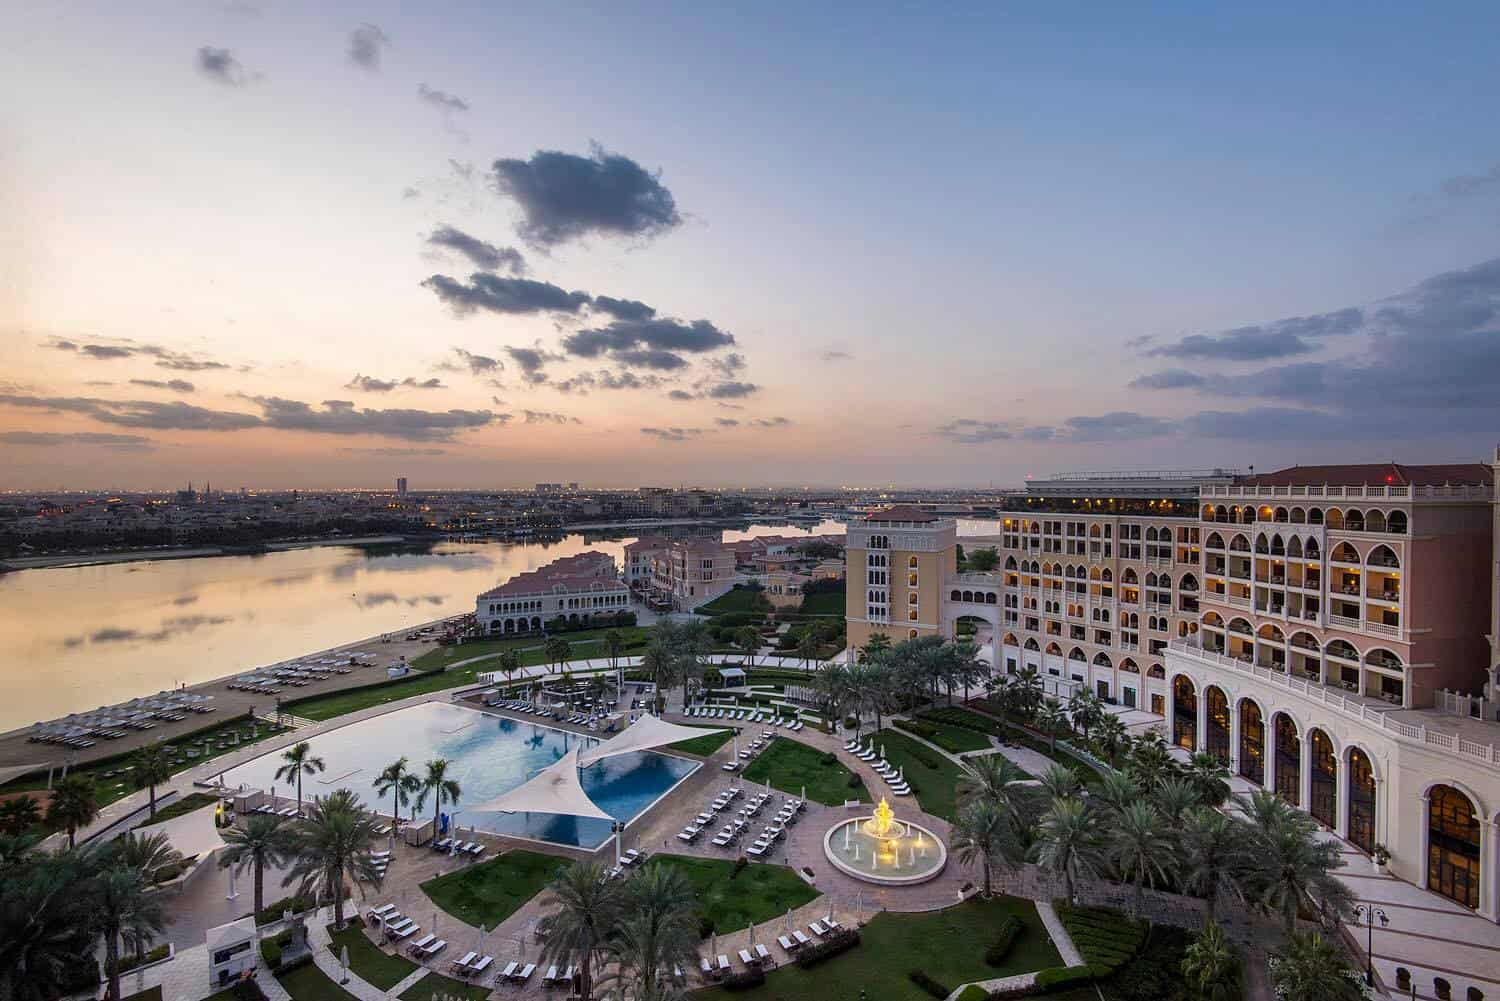 Ritz carlton grand canal abu dhabi location